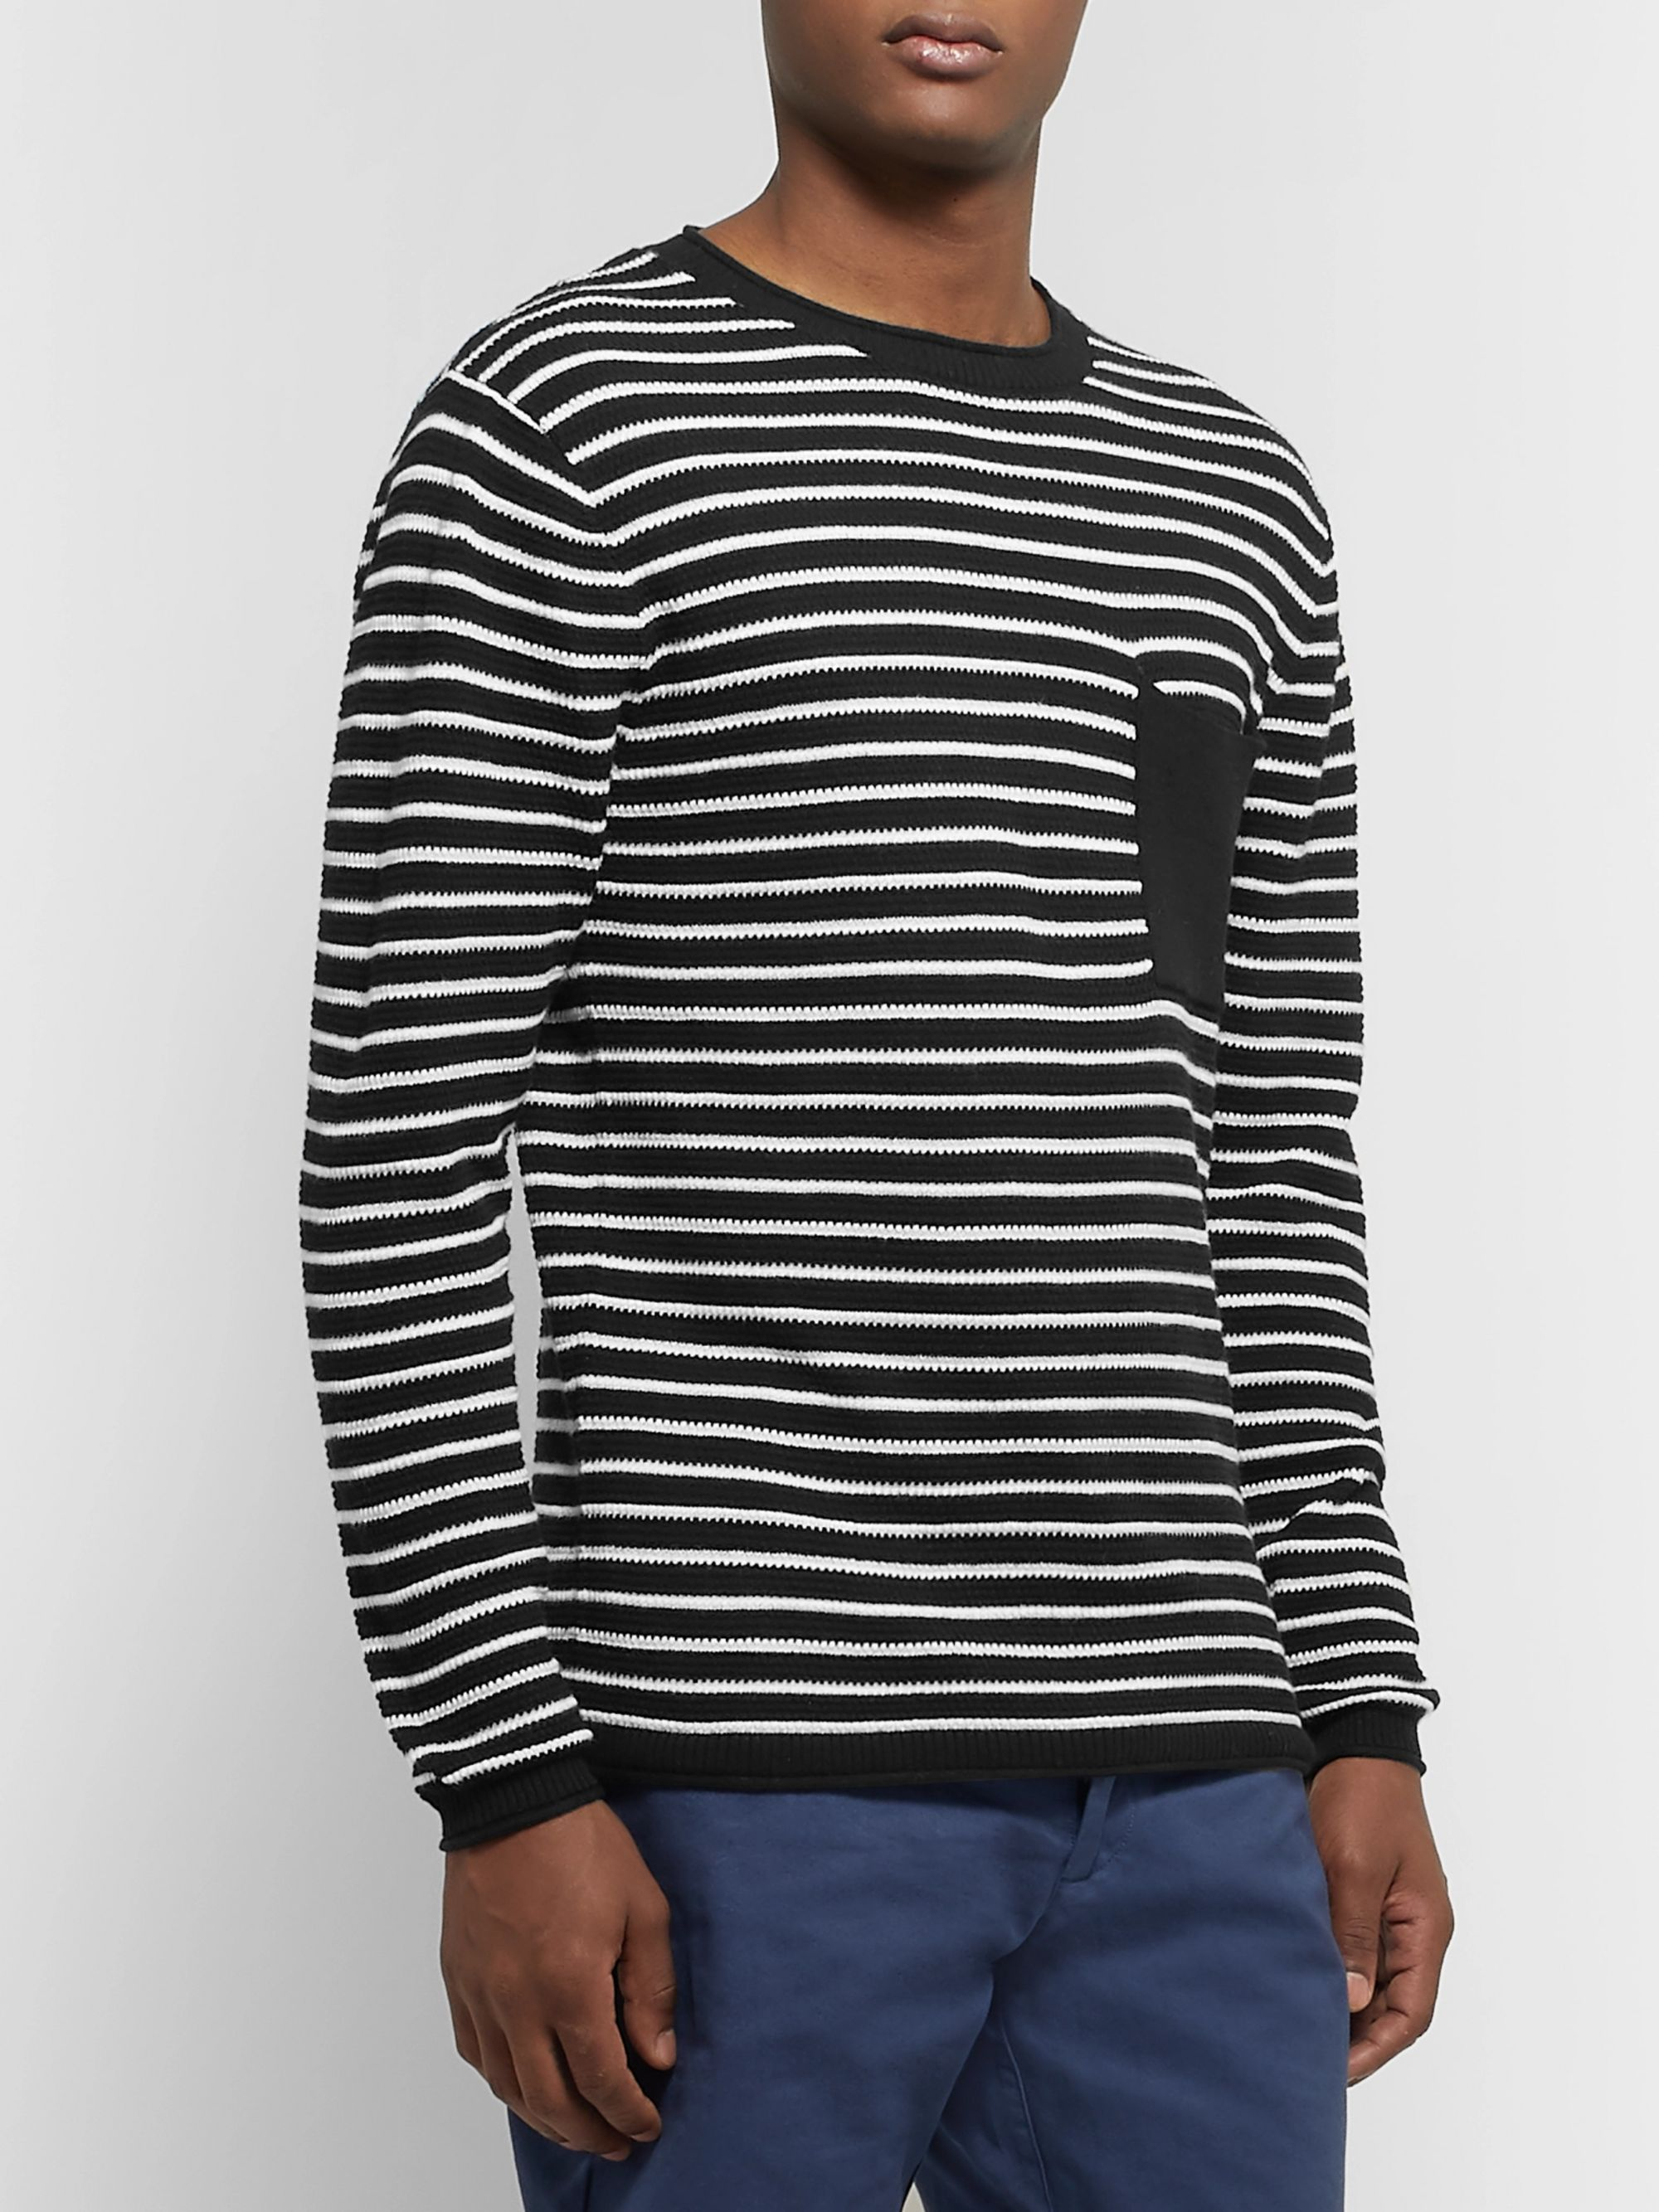 Striped Cotton And Cashmere Blend Sweater by Saturdays Nyc